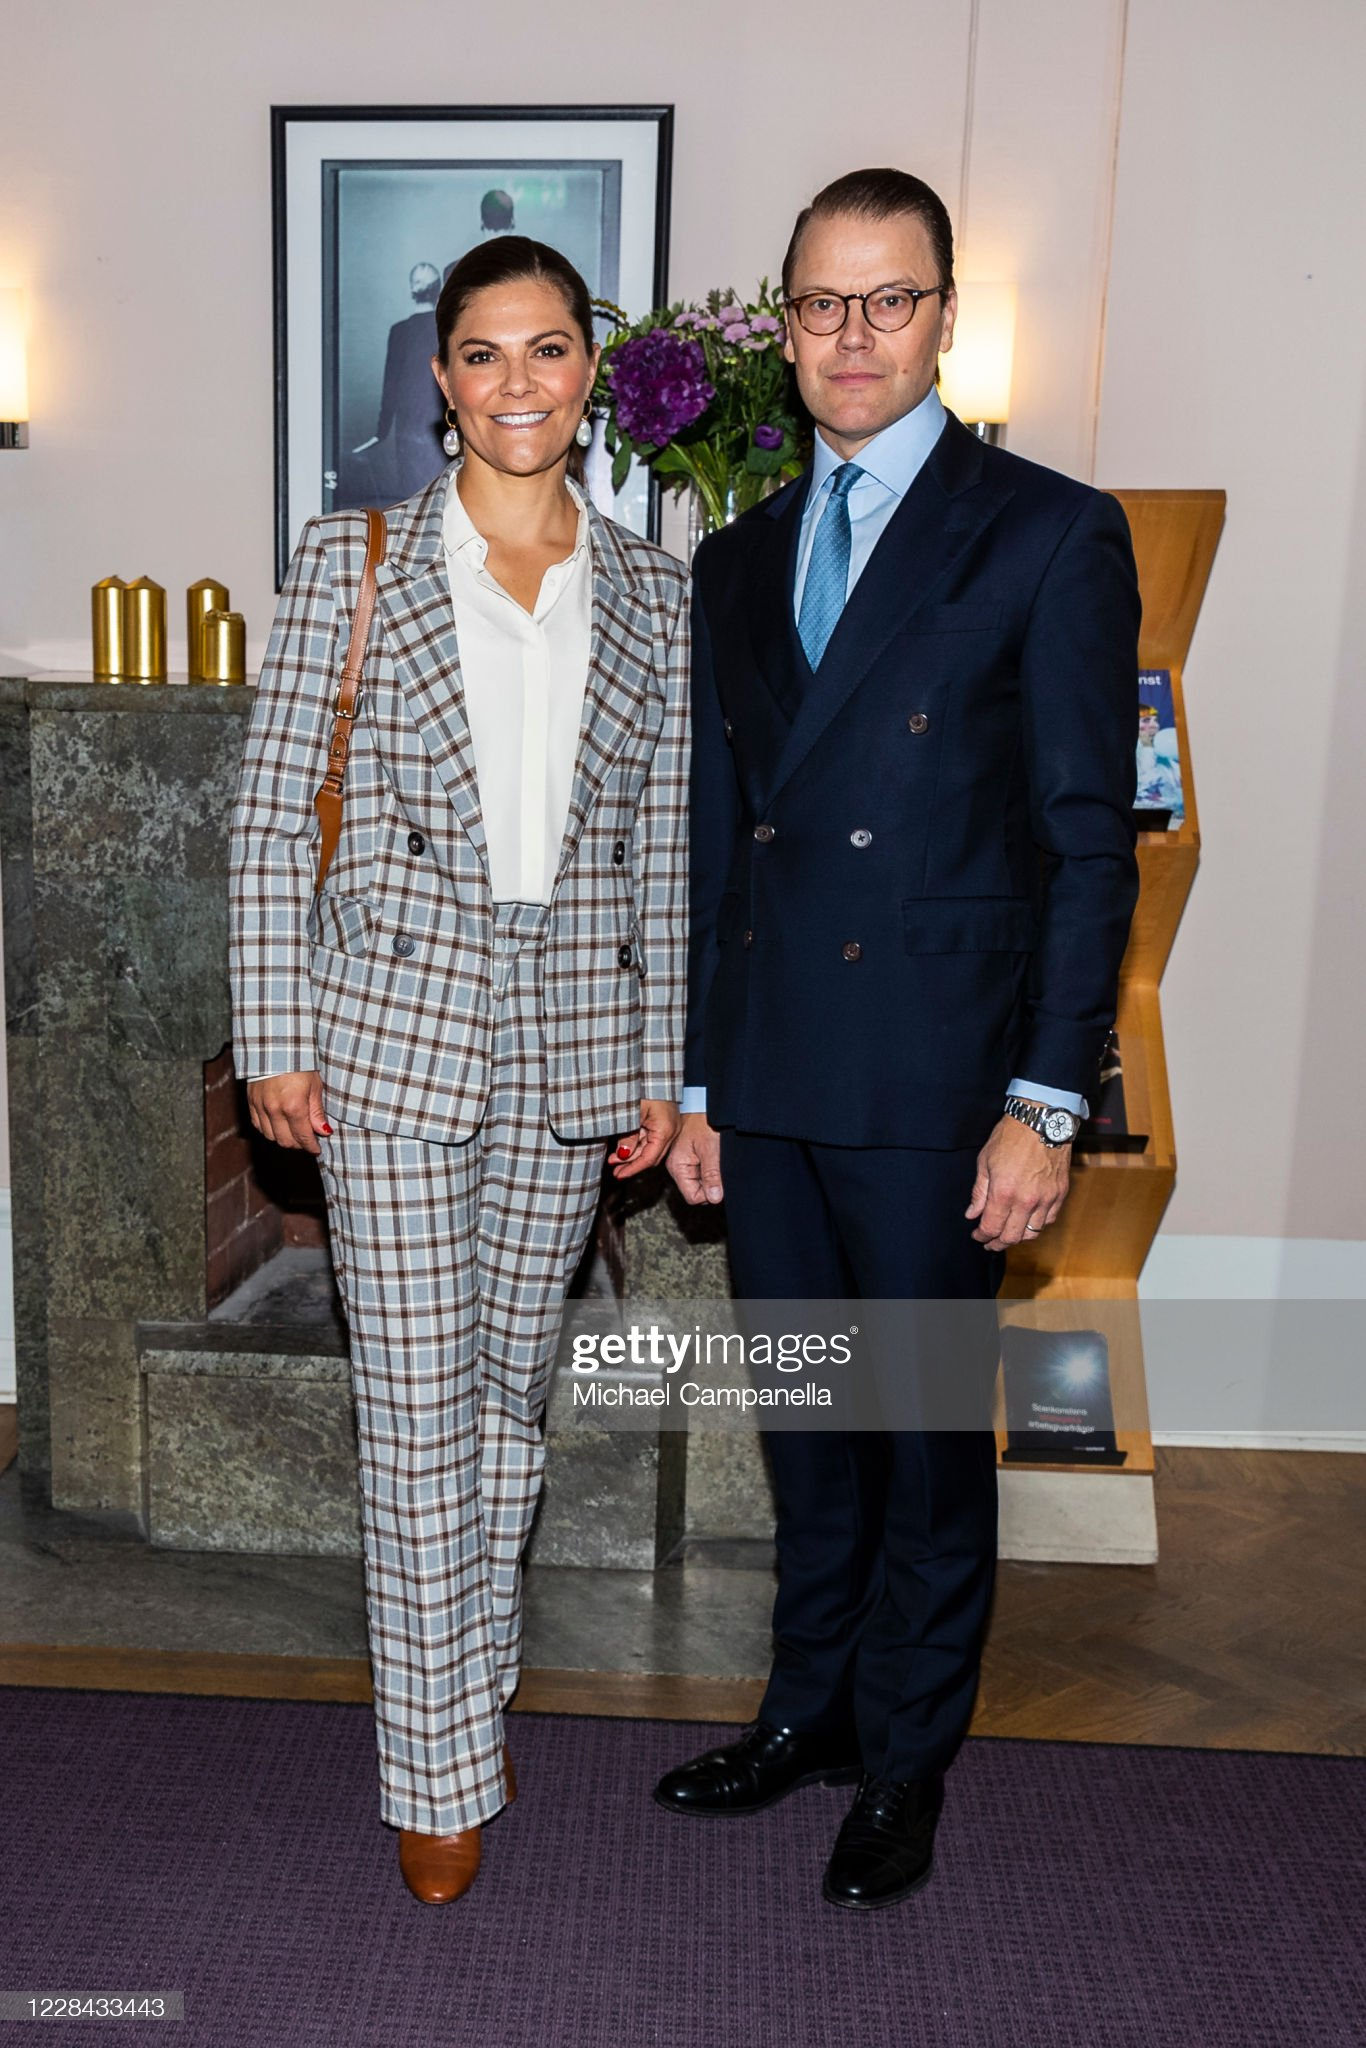 crown-princess-victoria-and-prince-daniel-of-sweden-visit-the-swedish-picture-id1228433443